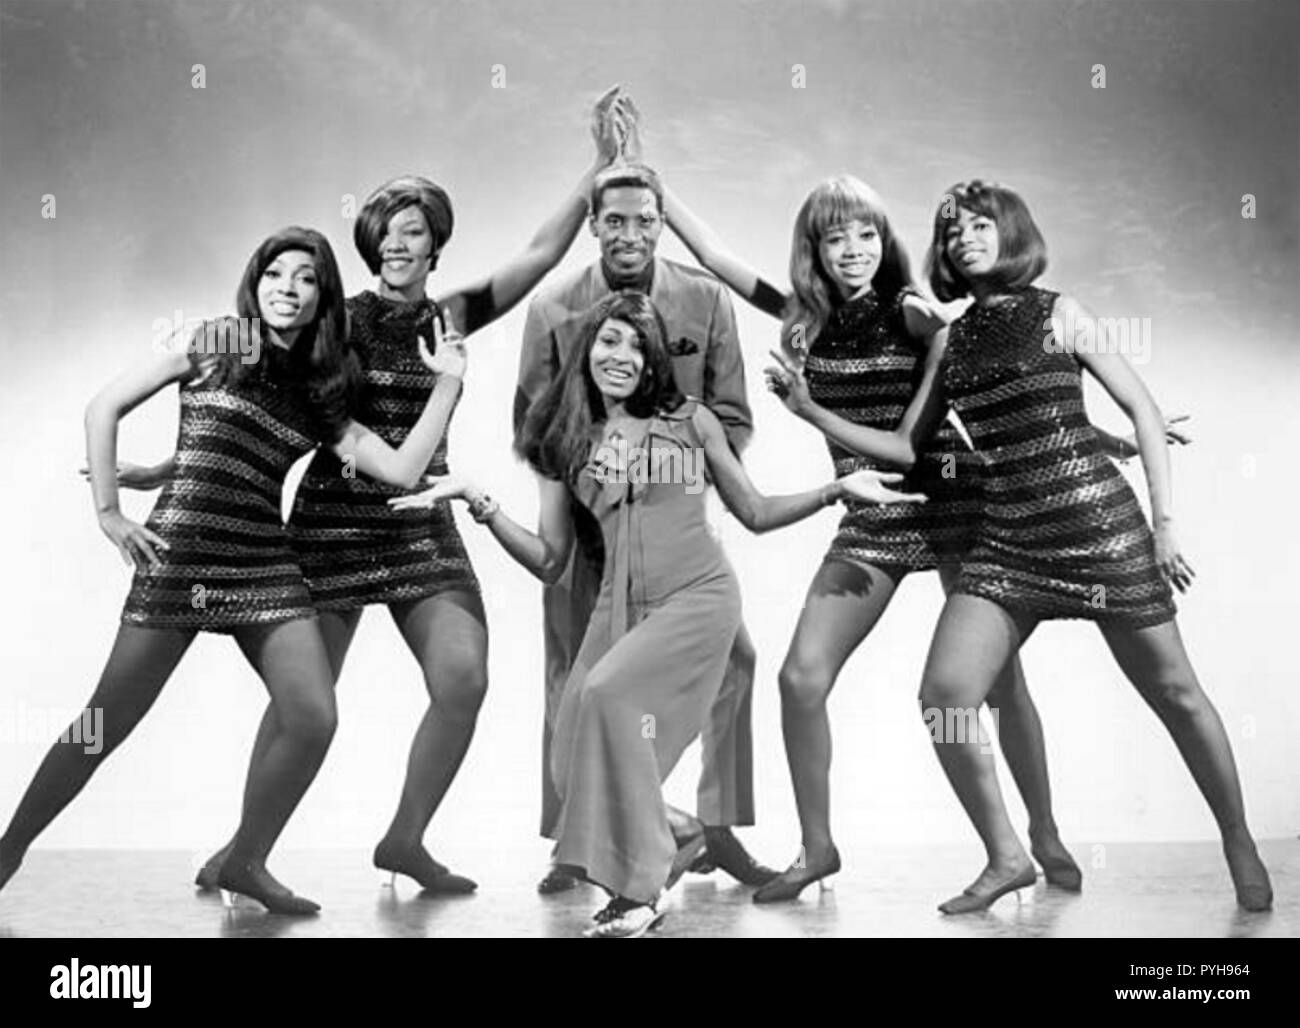 TINA TURNER Promotional photo  with Ike Turner and the Ikettes about 1966 - Stock Image